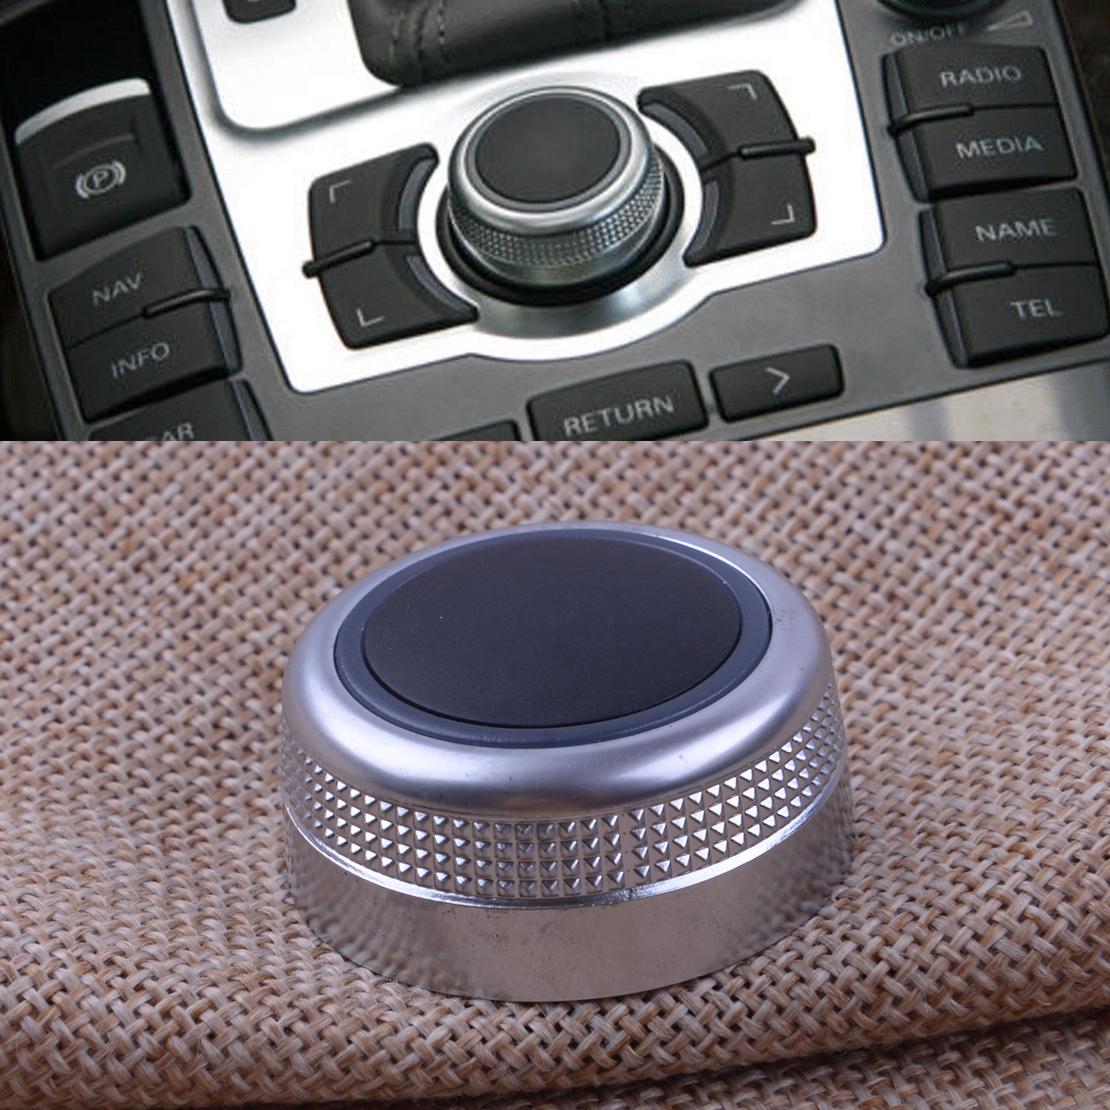 CITALL Chrome Plated Car Multimedia Rotary Knob Main Menu Control Switch Cover Cap 4F0919069 for <font><b>Audi</b></font> A6 <font><b>A8</b></font> Quattro Q7 2007 <font><b>2008</b></font> image